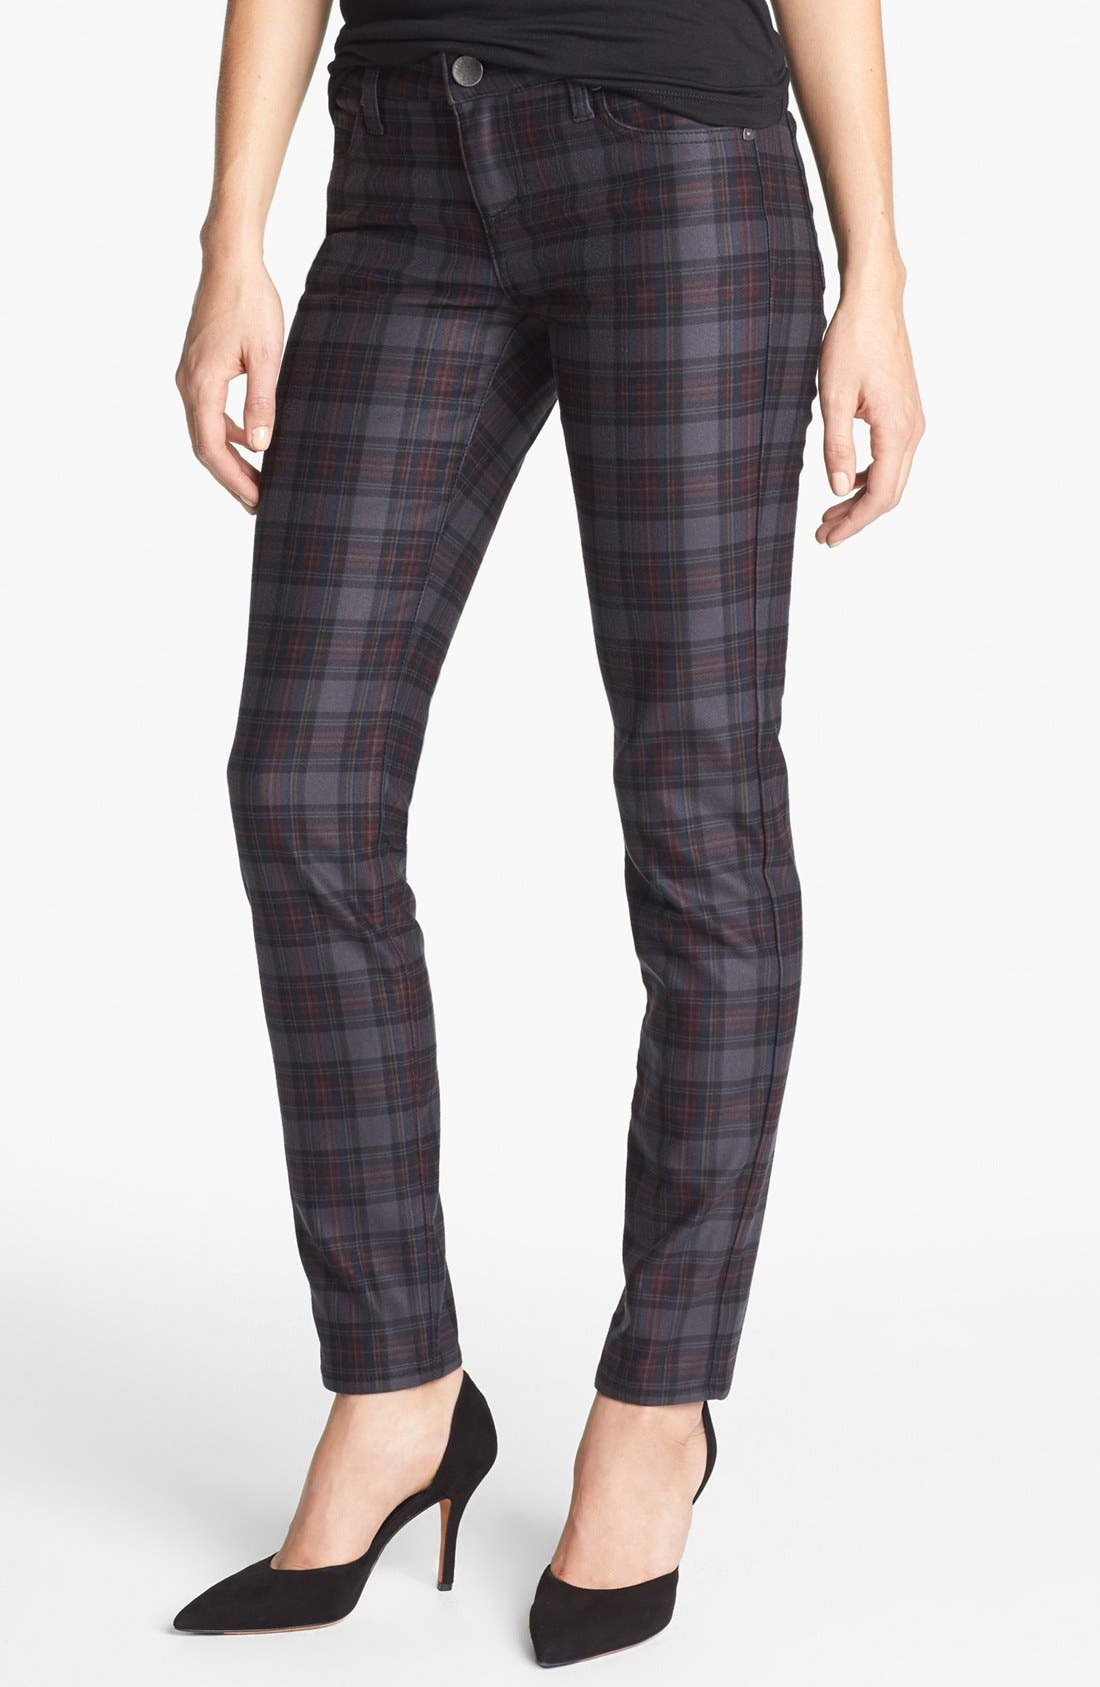 Main Image - KUT from the Kloth 'Mia' Plaid Toothpick Skinny Jeans (Grey)